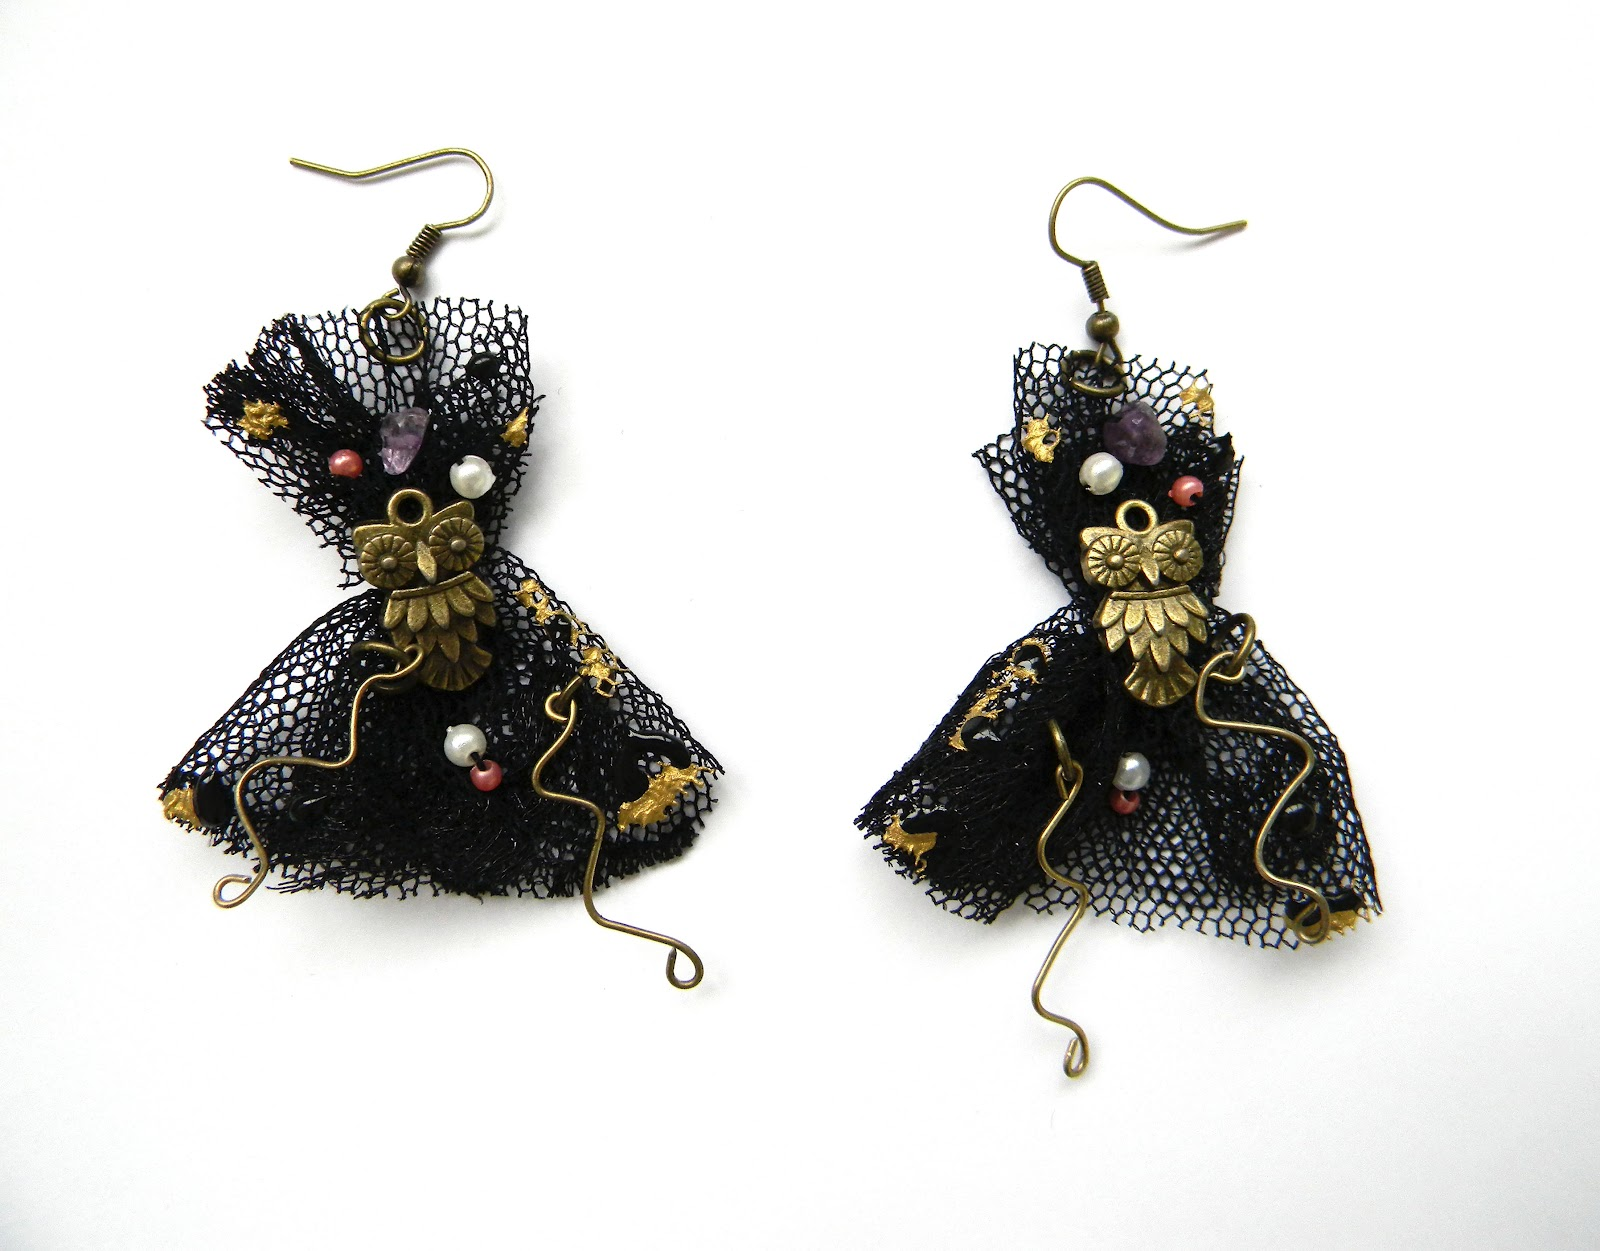 Gothic Inpired Earrings/Owl Charm/Statement Earrings